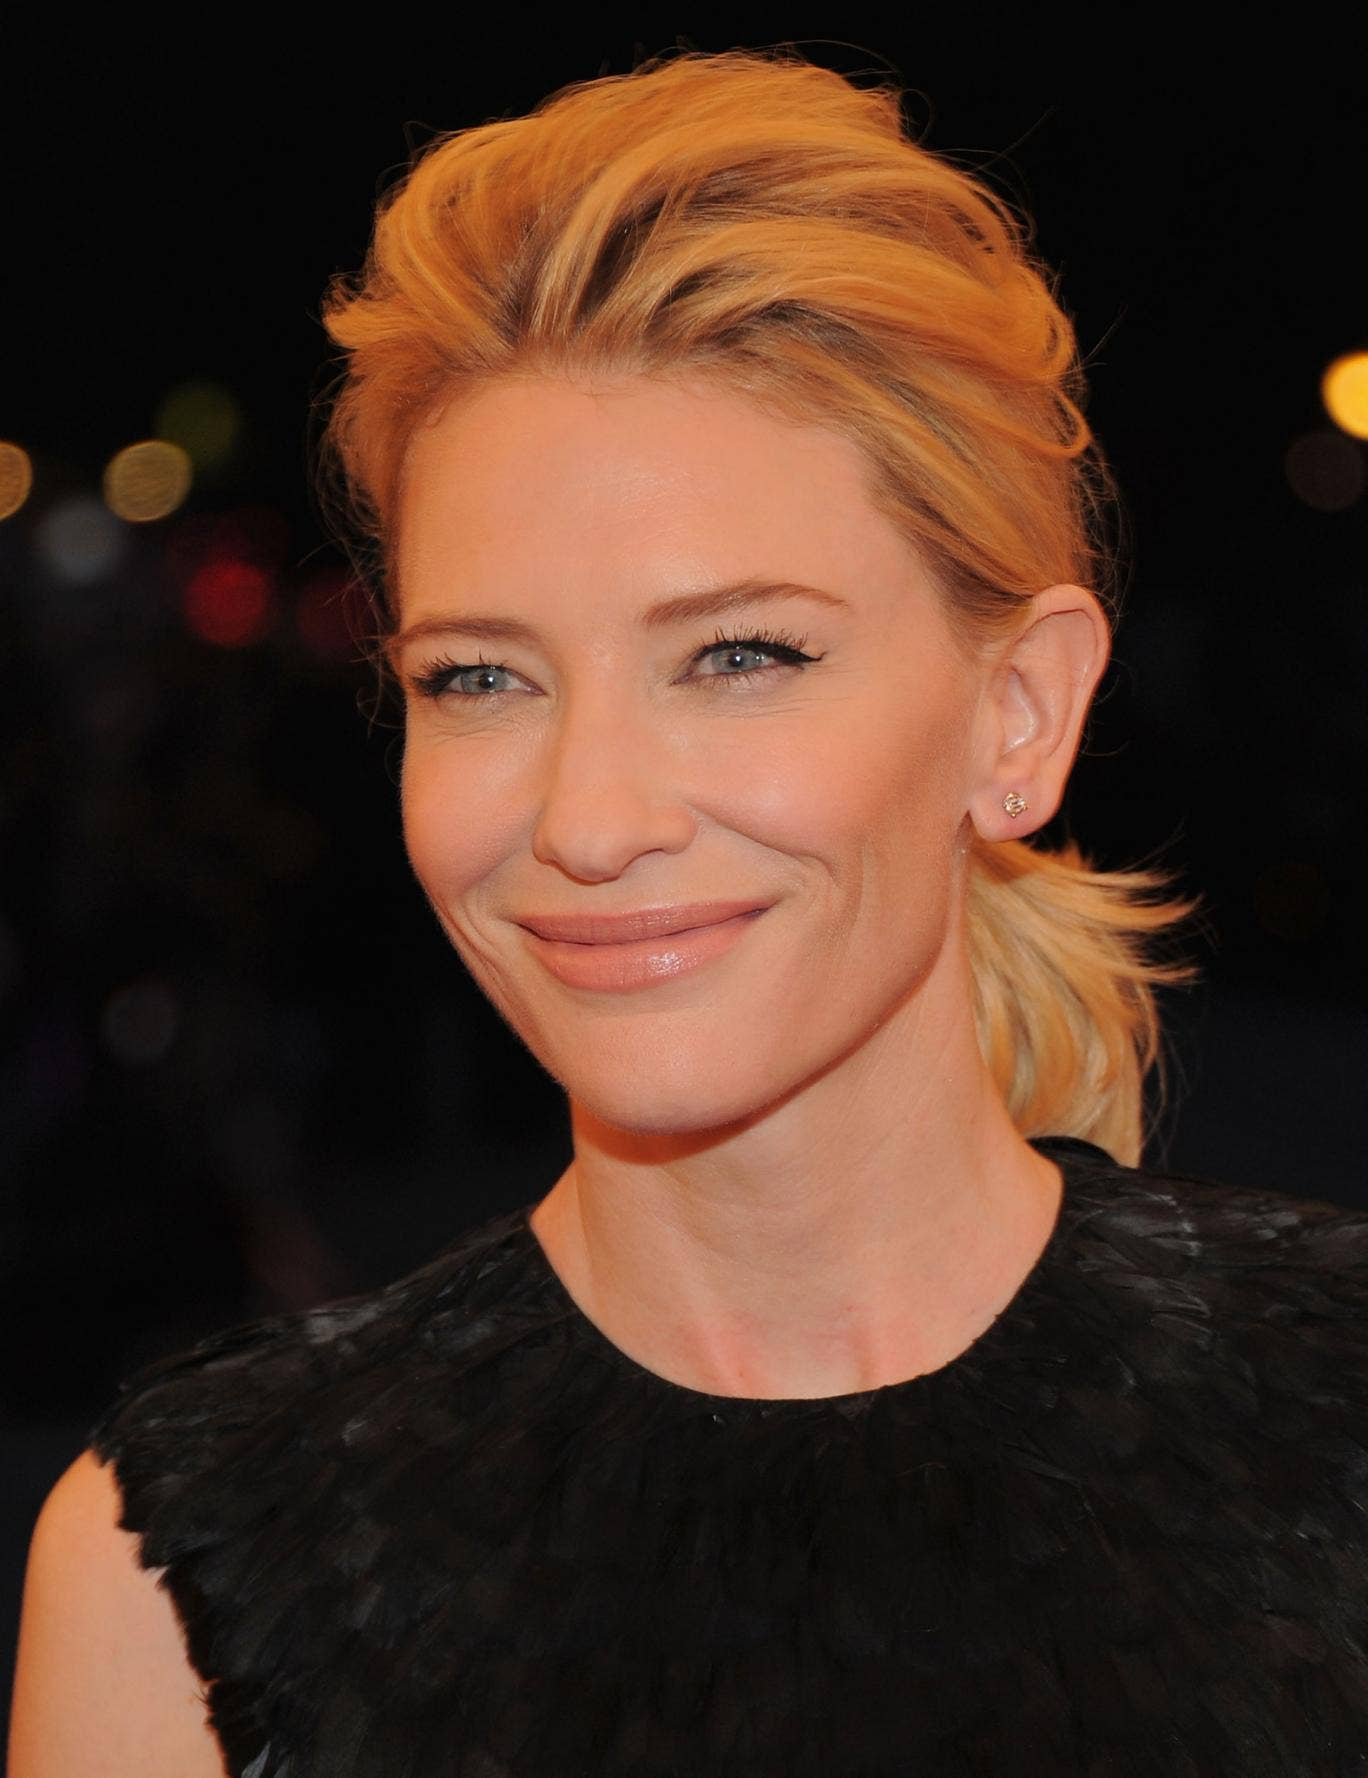 Cate Blanchett will be at the London premiere of Blue Jasmine tonight